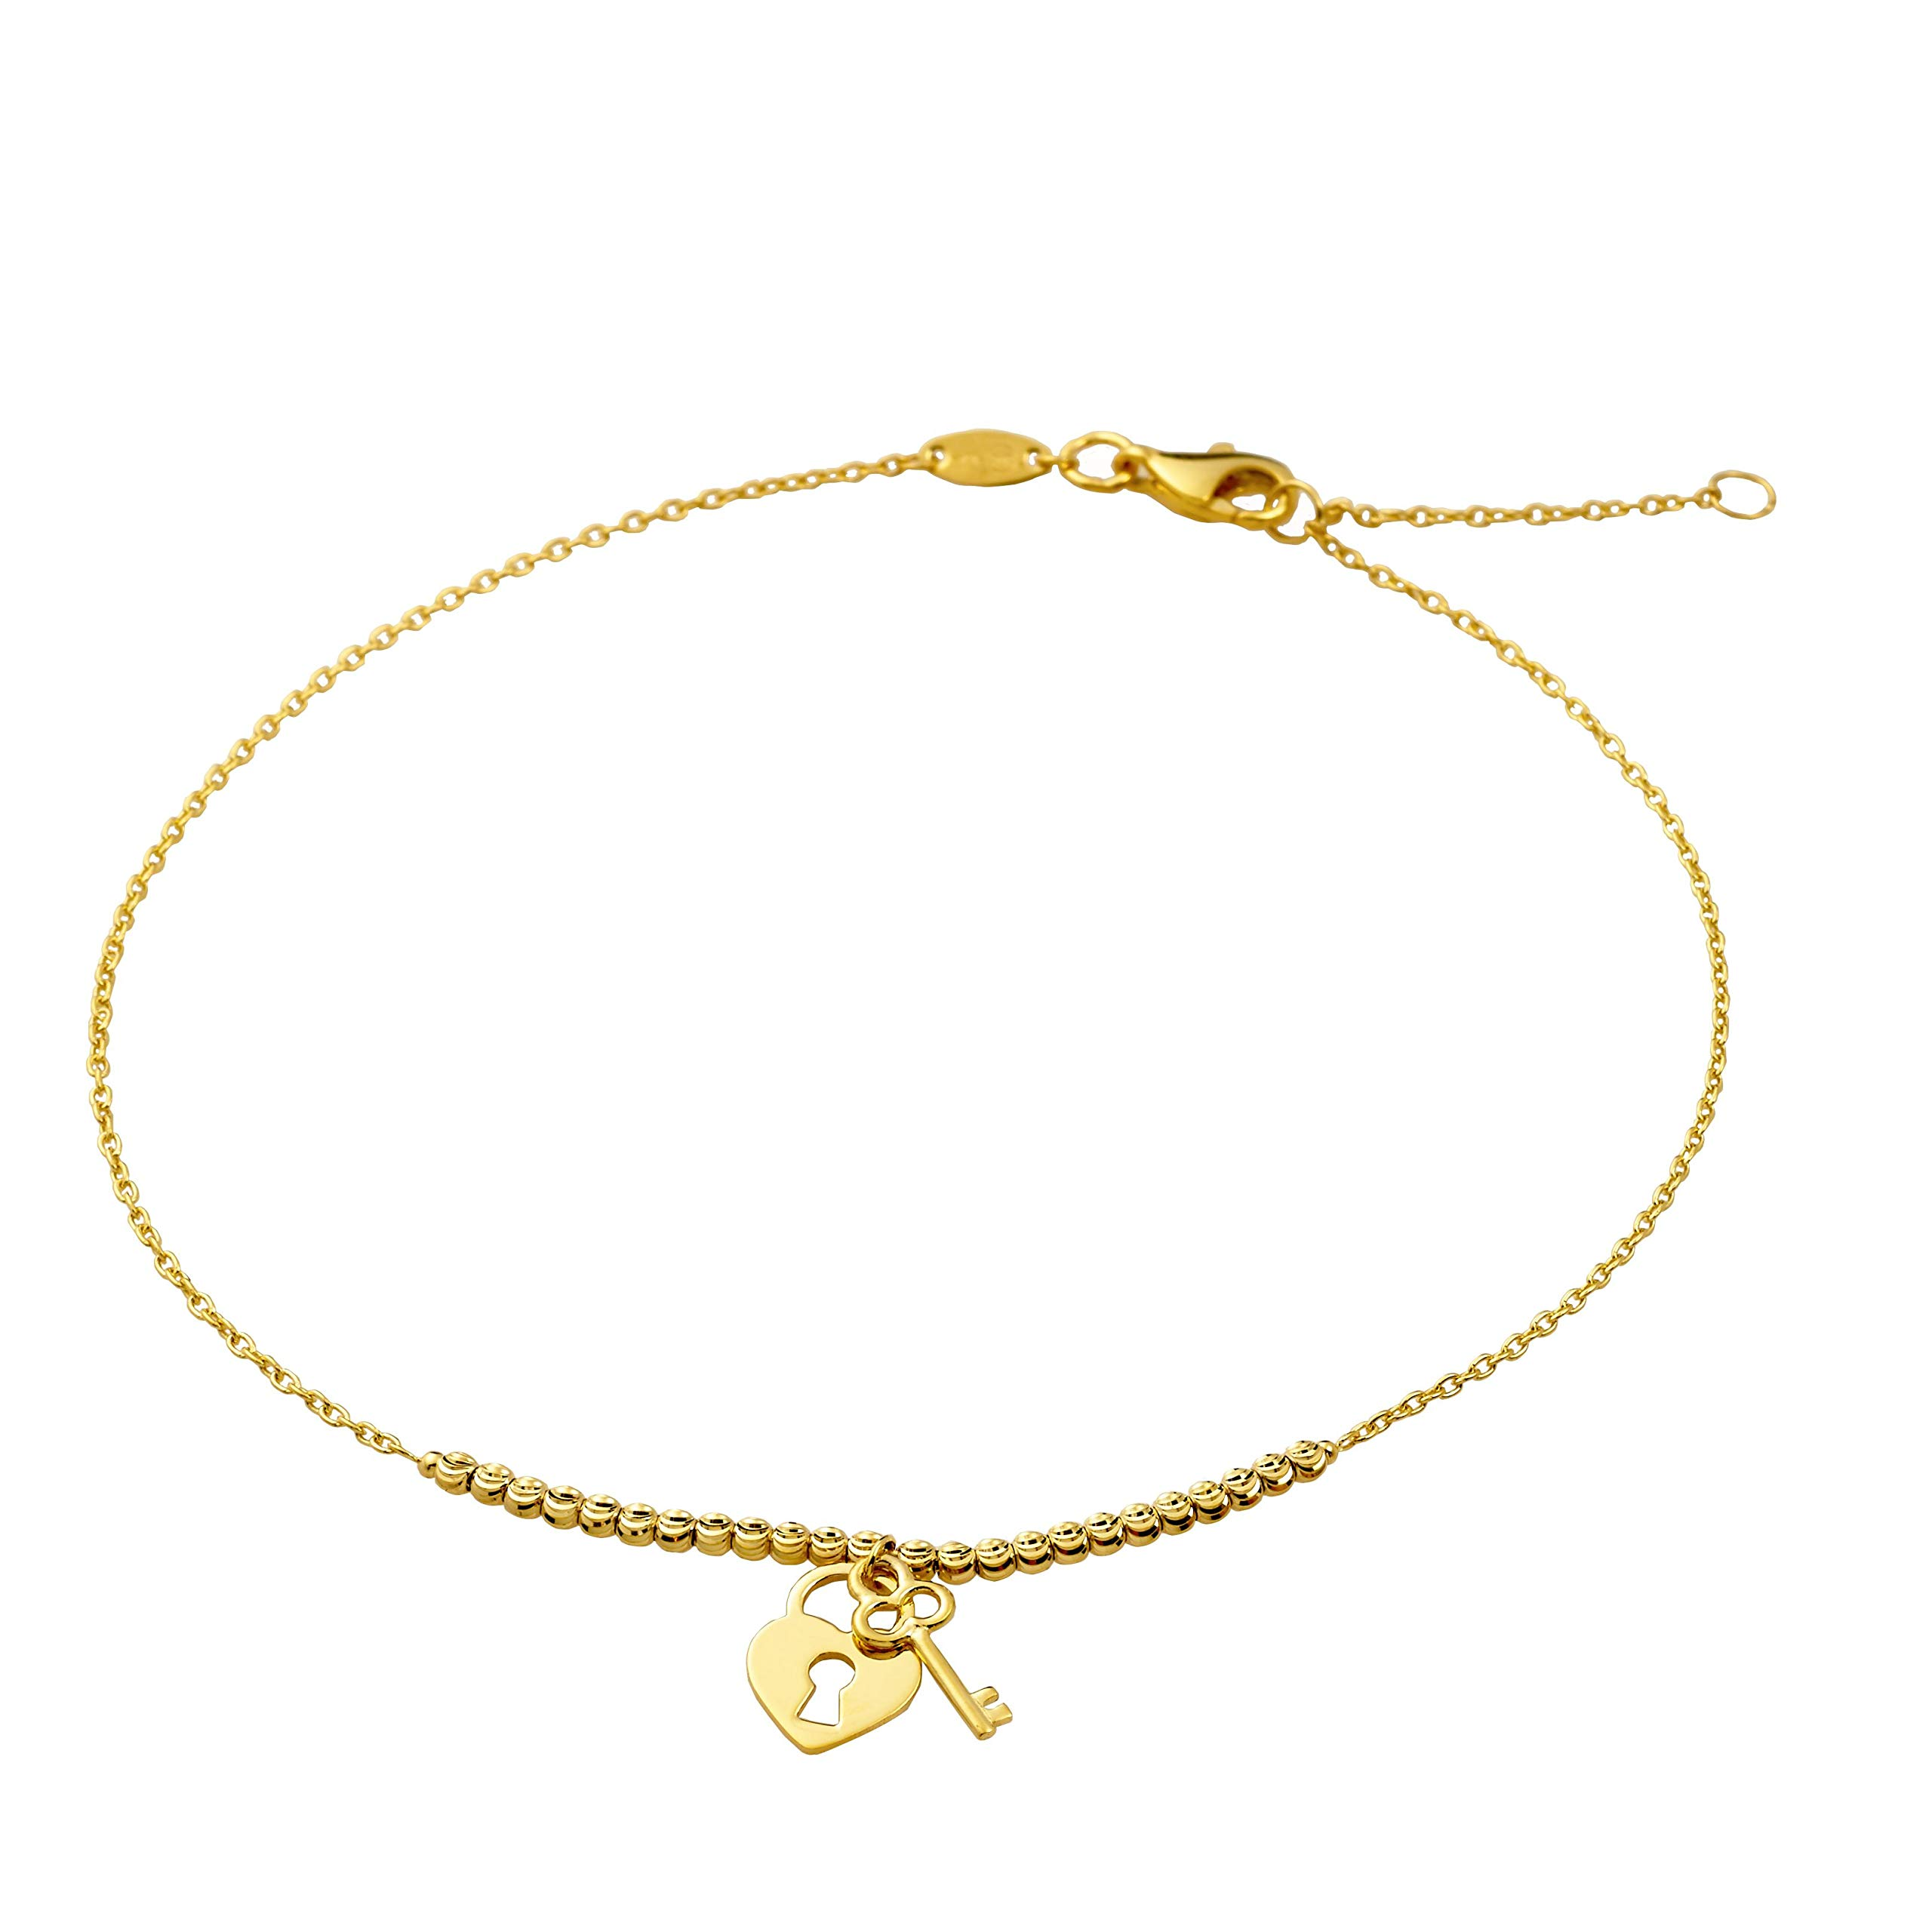 LoveBling 10K Yellow Gold .5mm Diamond Cut Beads and Heart Lock & Key Charm Anklet Adjustable 9'' - 10'' (#71)